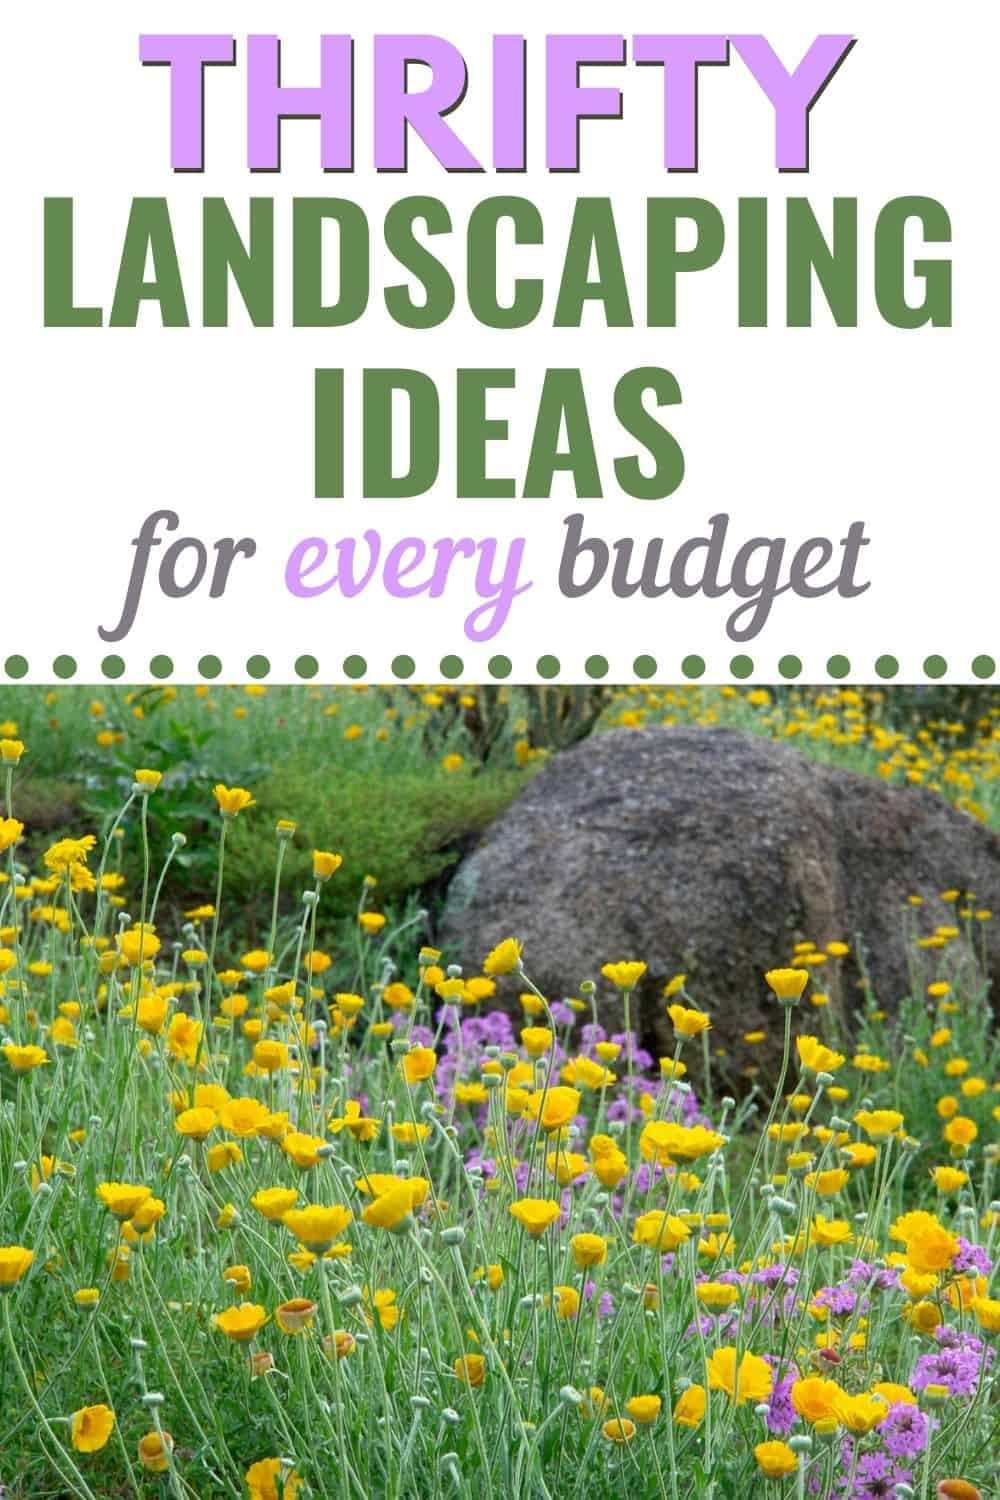 Thrifty landscaping ideas for every budget